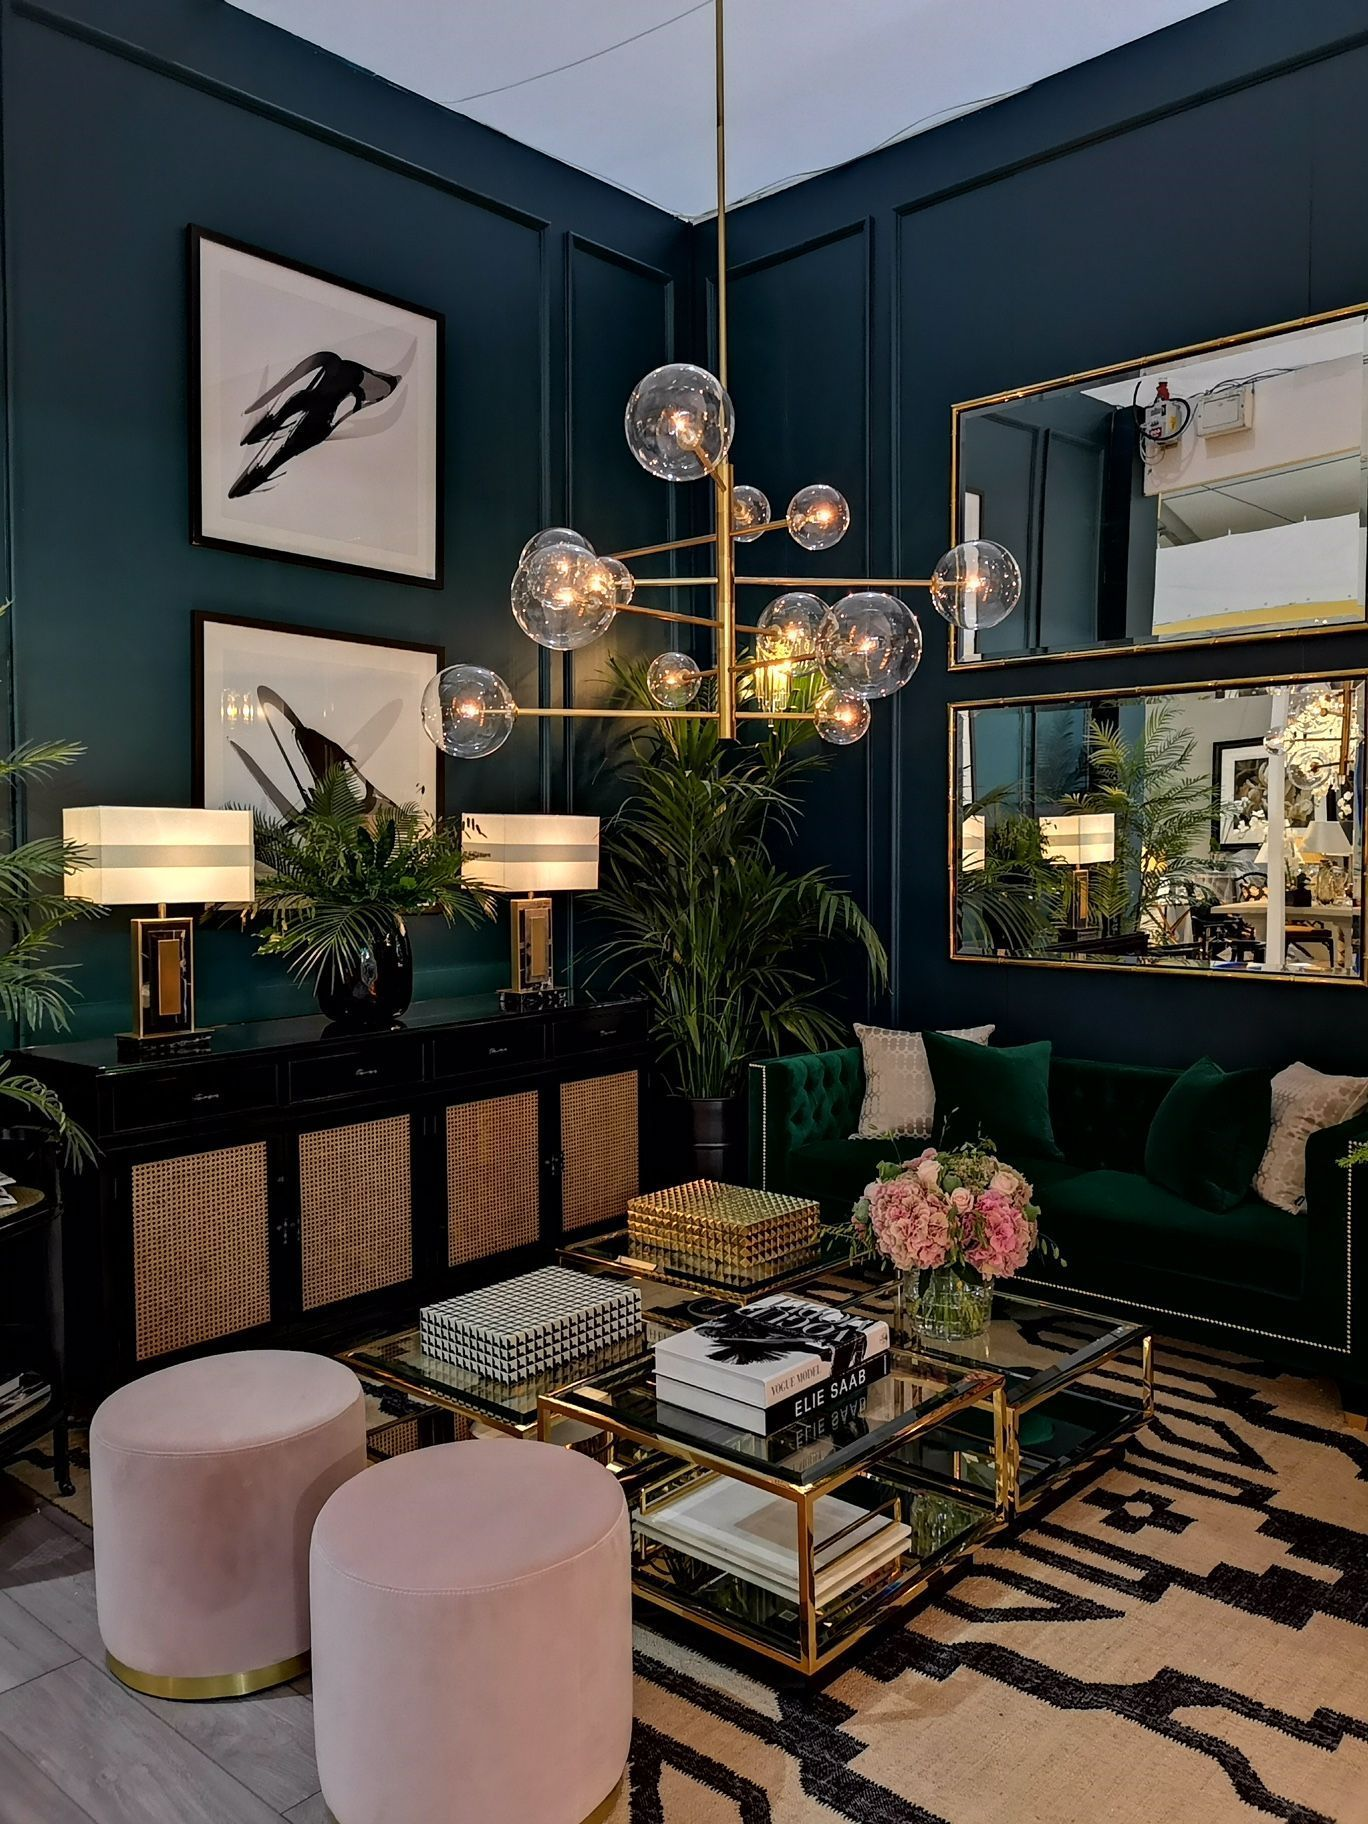 Almost Coming To An End, See What You Missed At Maison Et Objet 2019